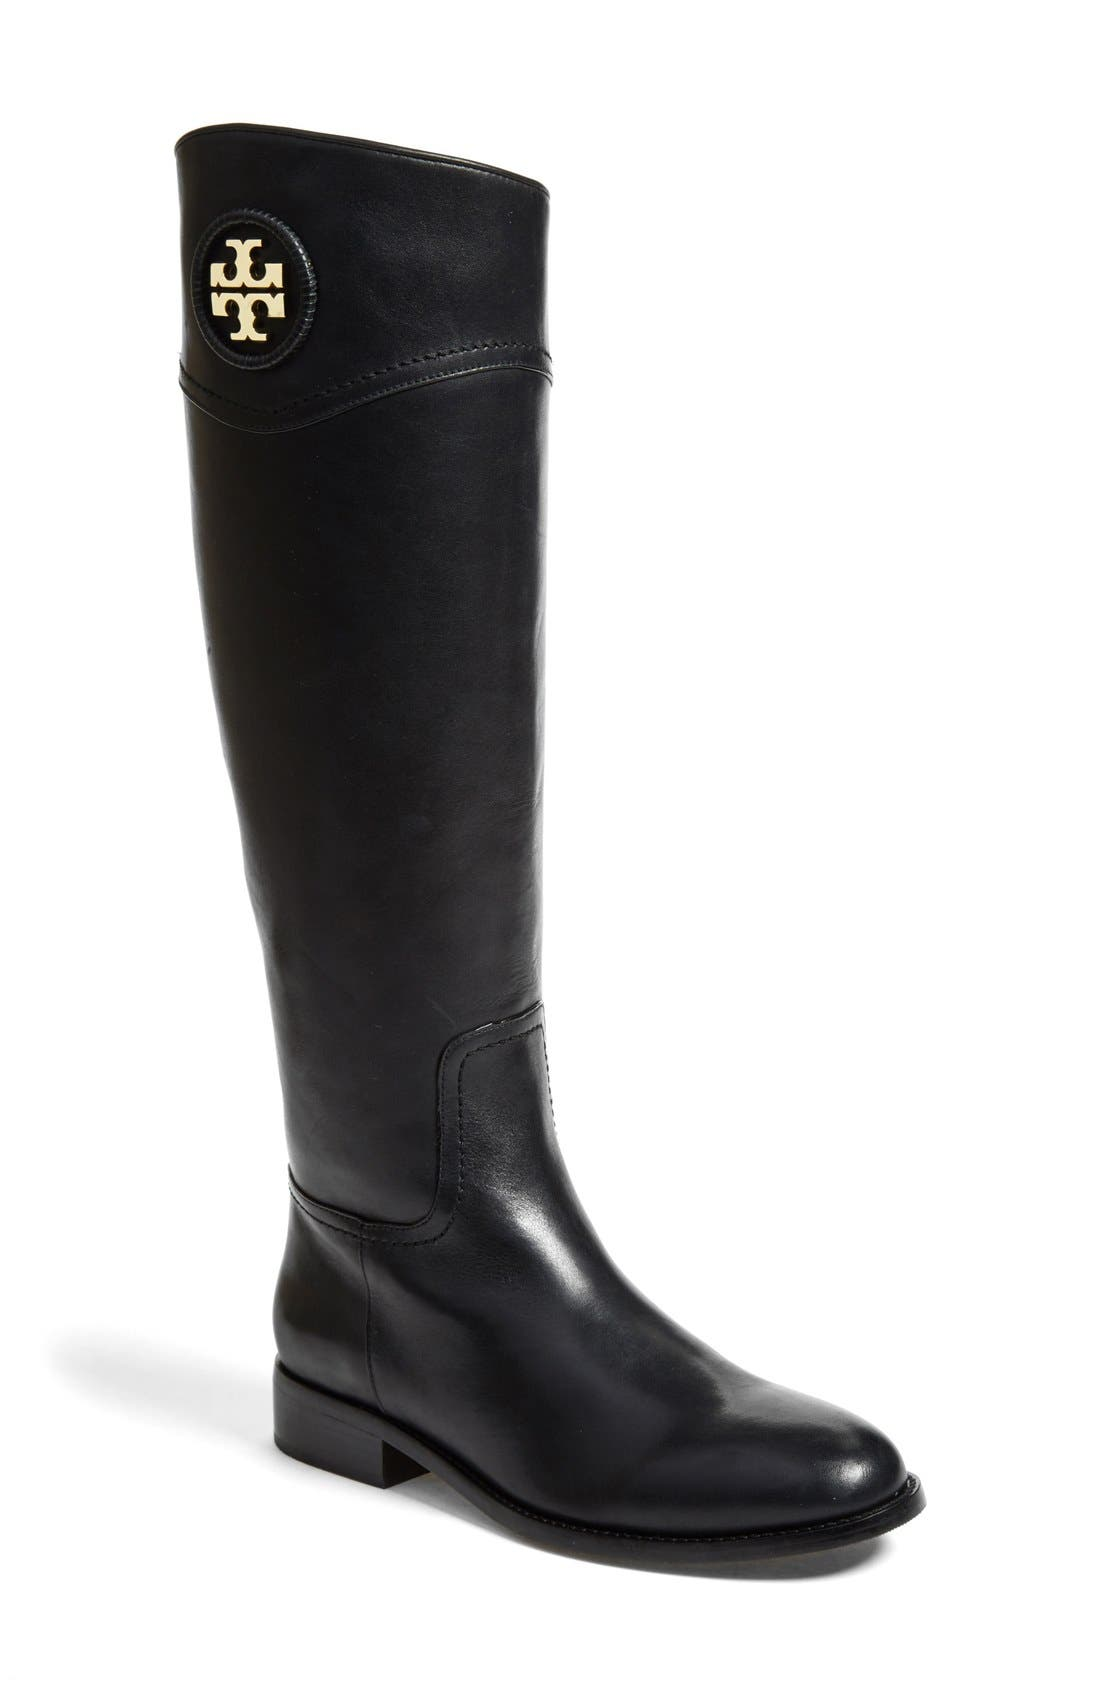 Alternate Image 1 Selected - Tory Burch 'Ashlynn' Wide Calf Riding Boot (Women)